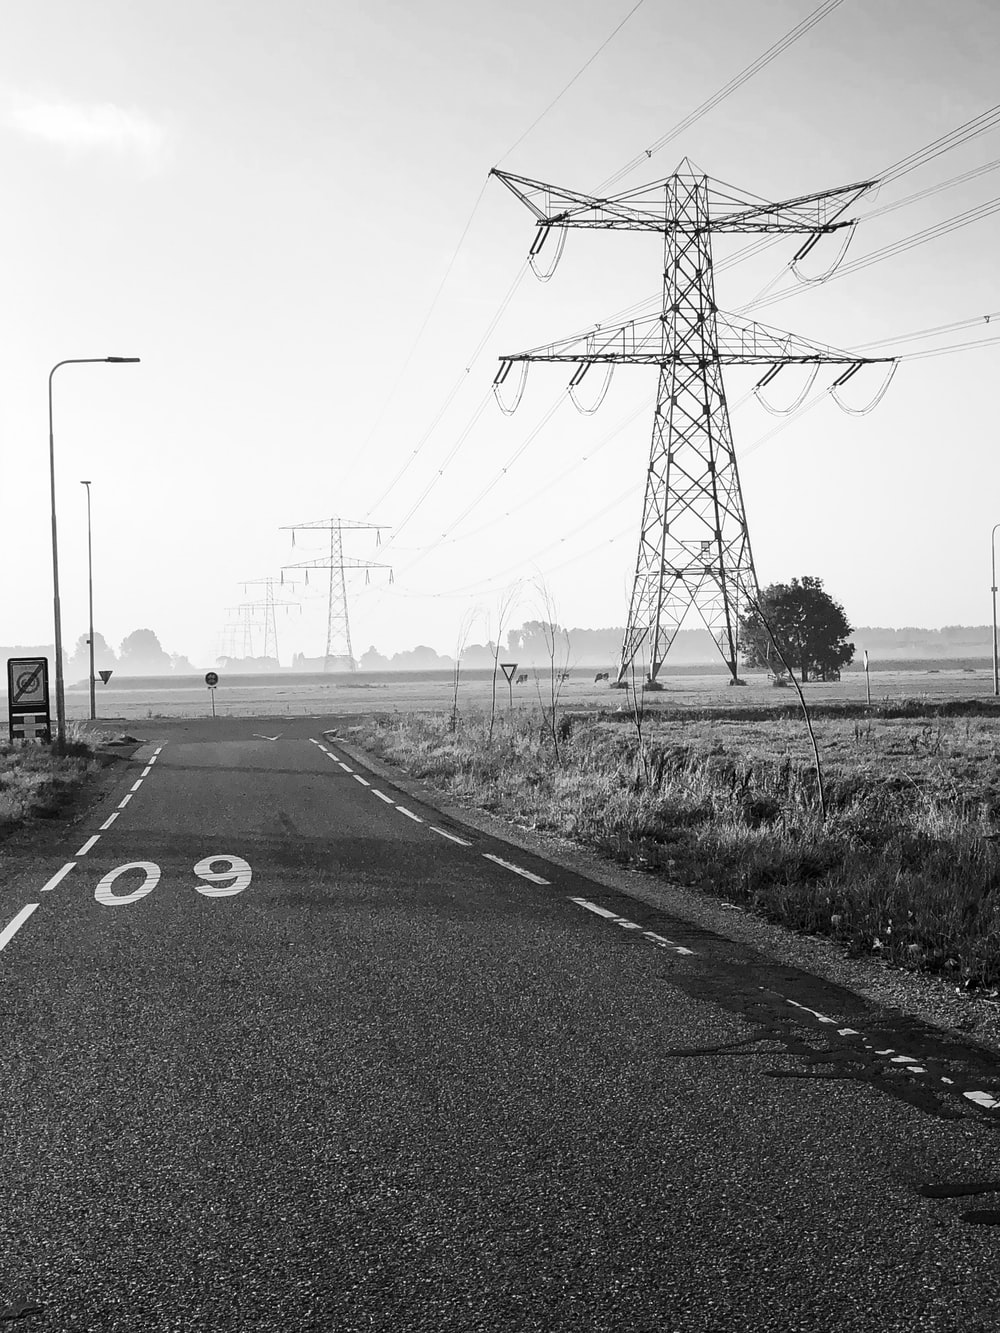 grayscale photography of road with utility tower